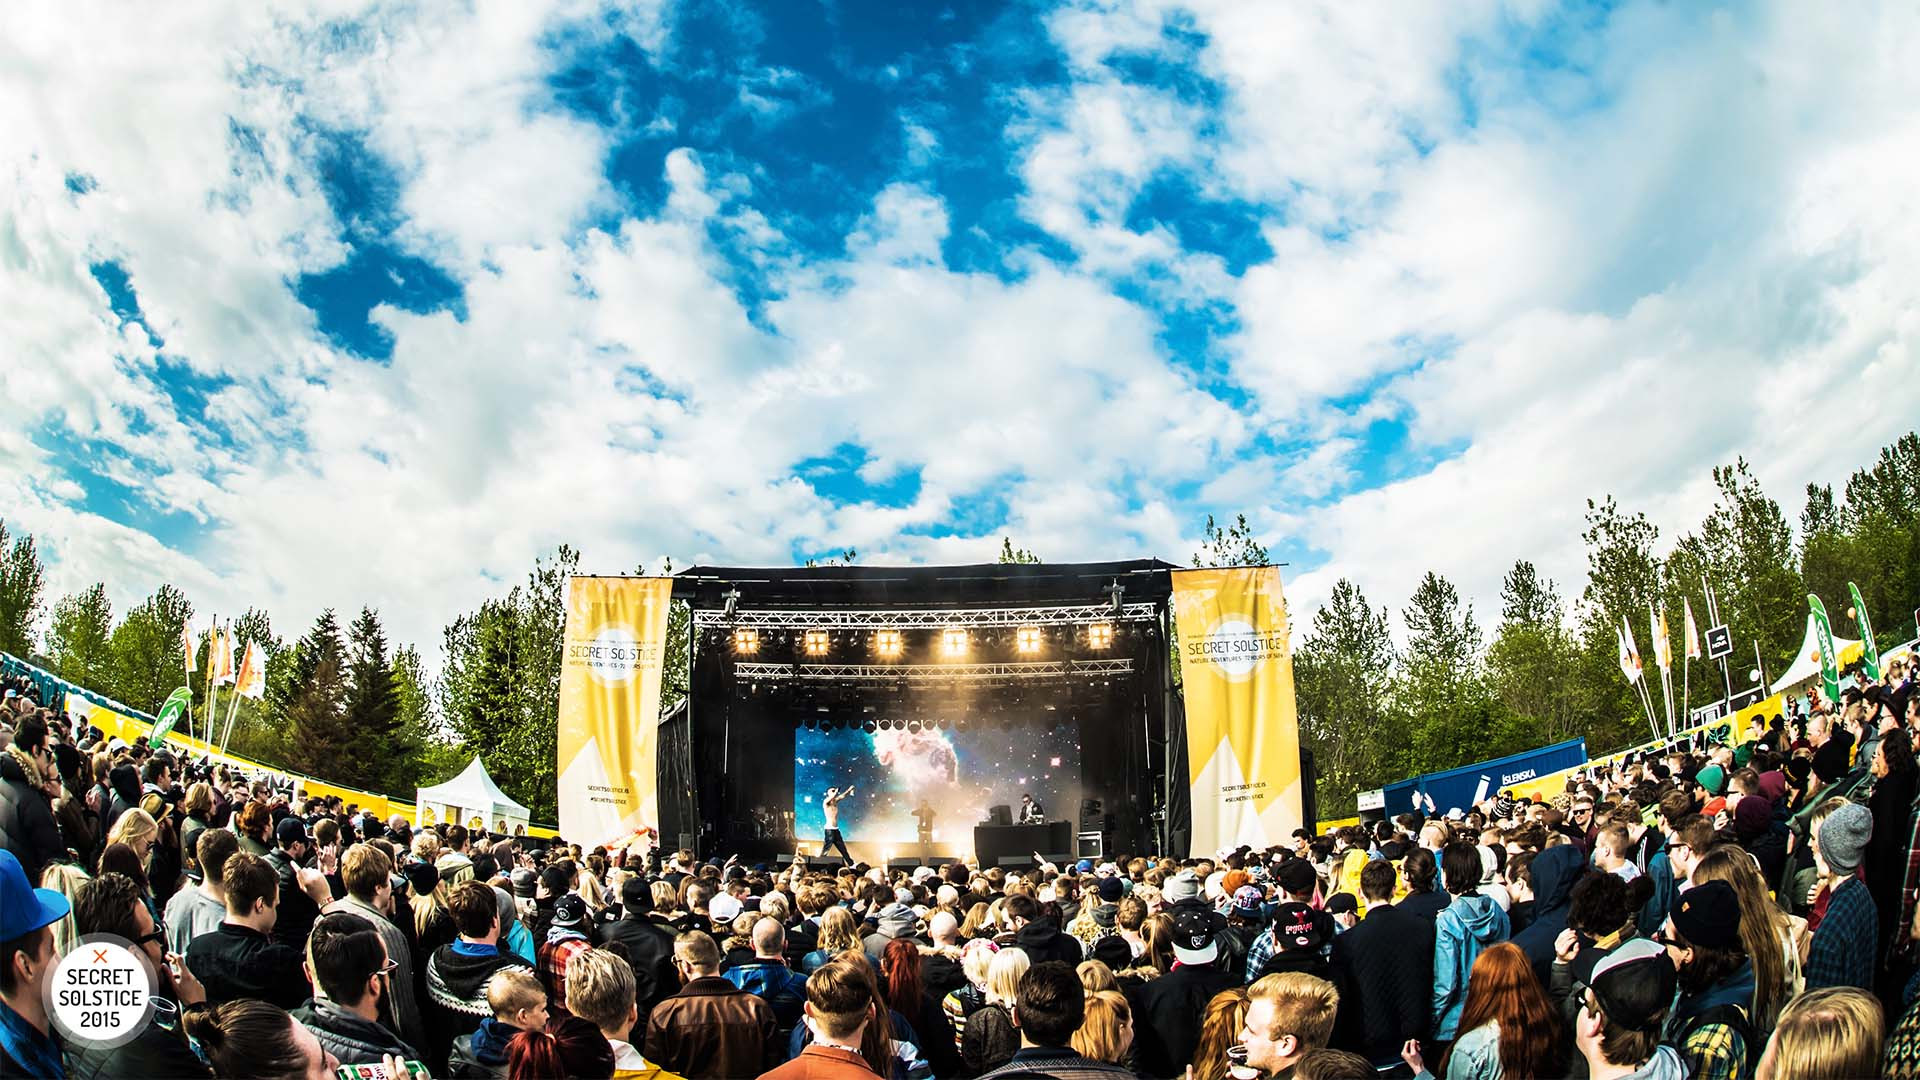 Secret Solstice, Reykjavik, Iceland, Europe